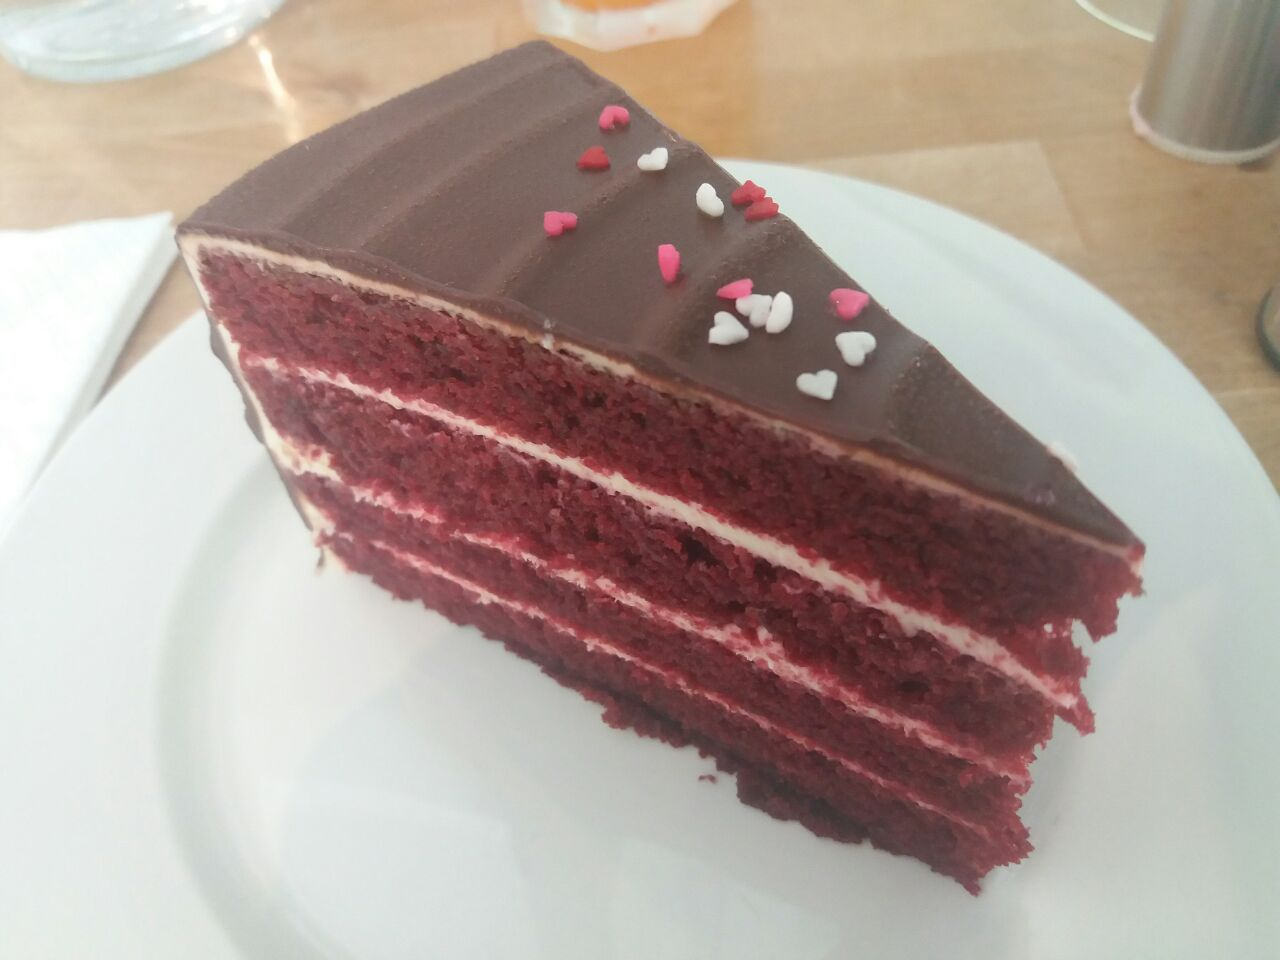 Chocolate Red Velvet Cake ($9.5)